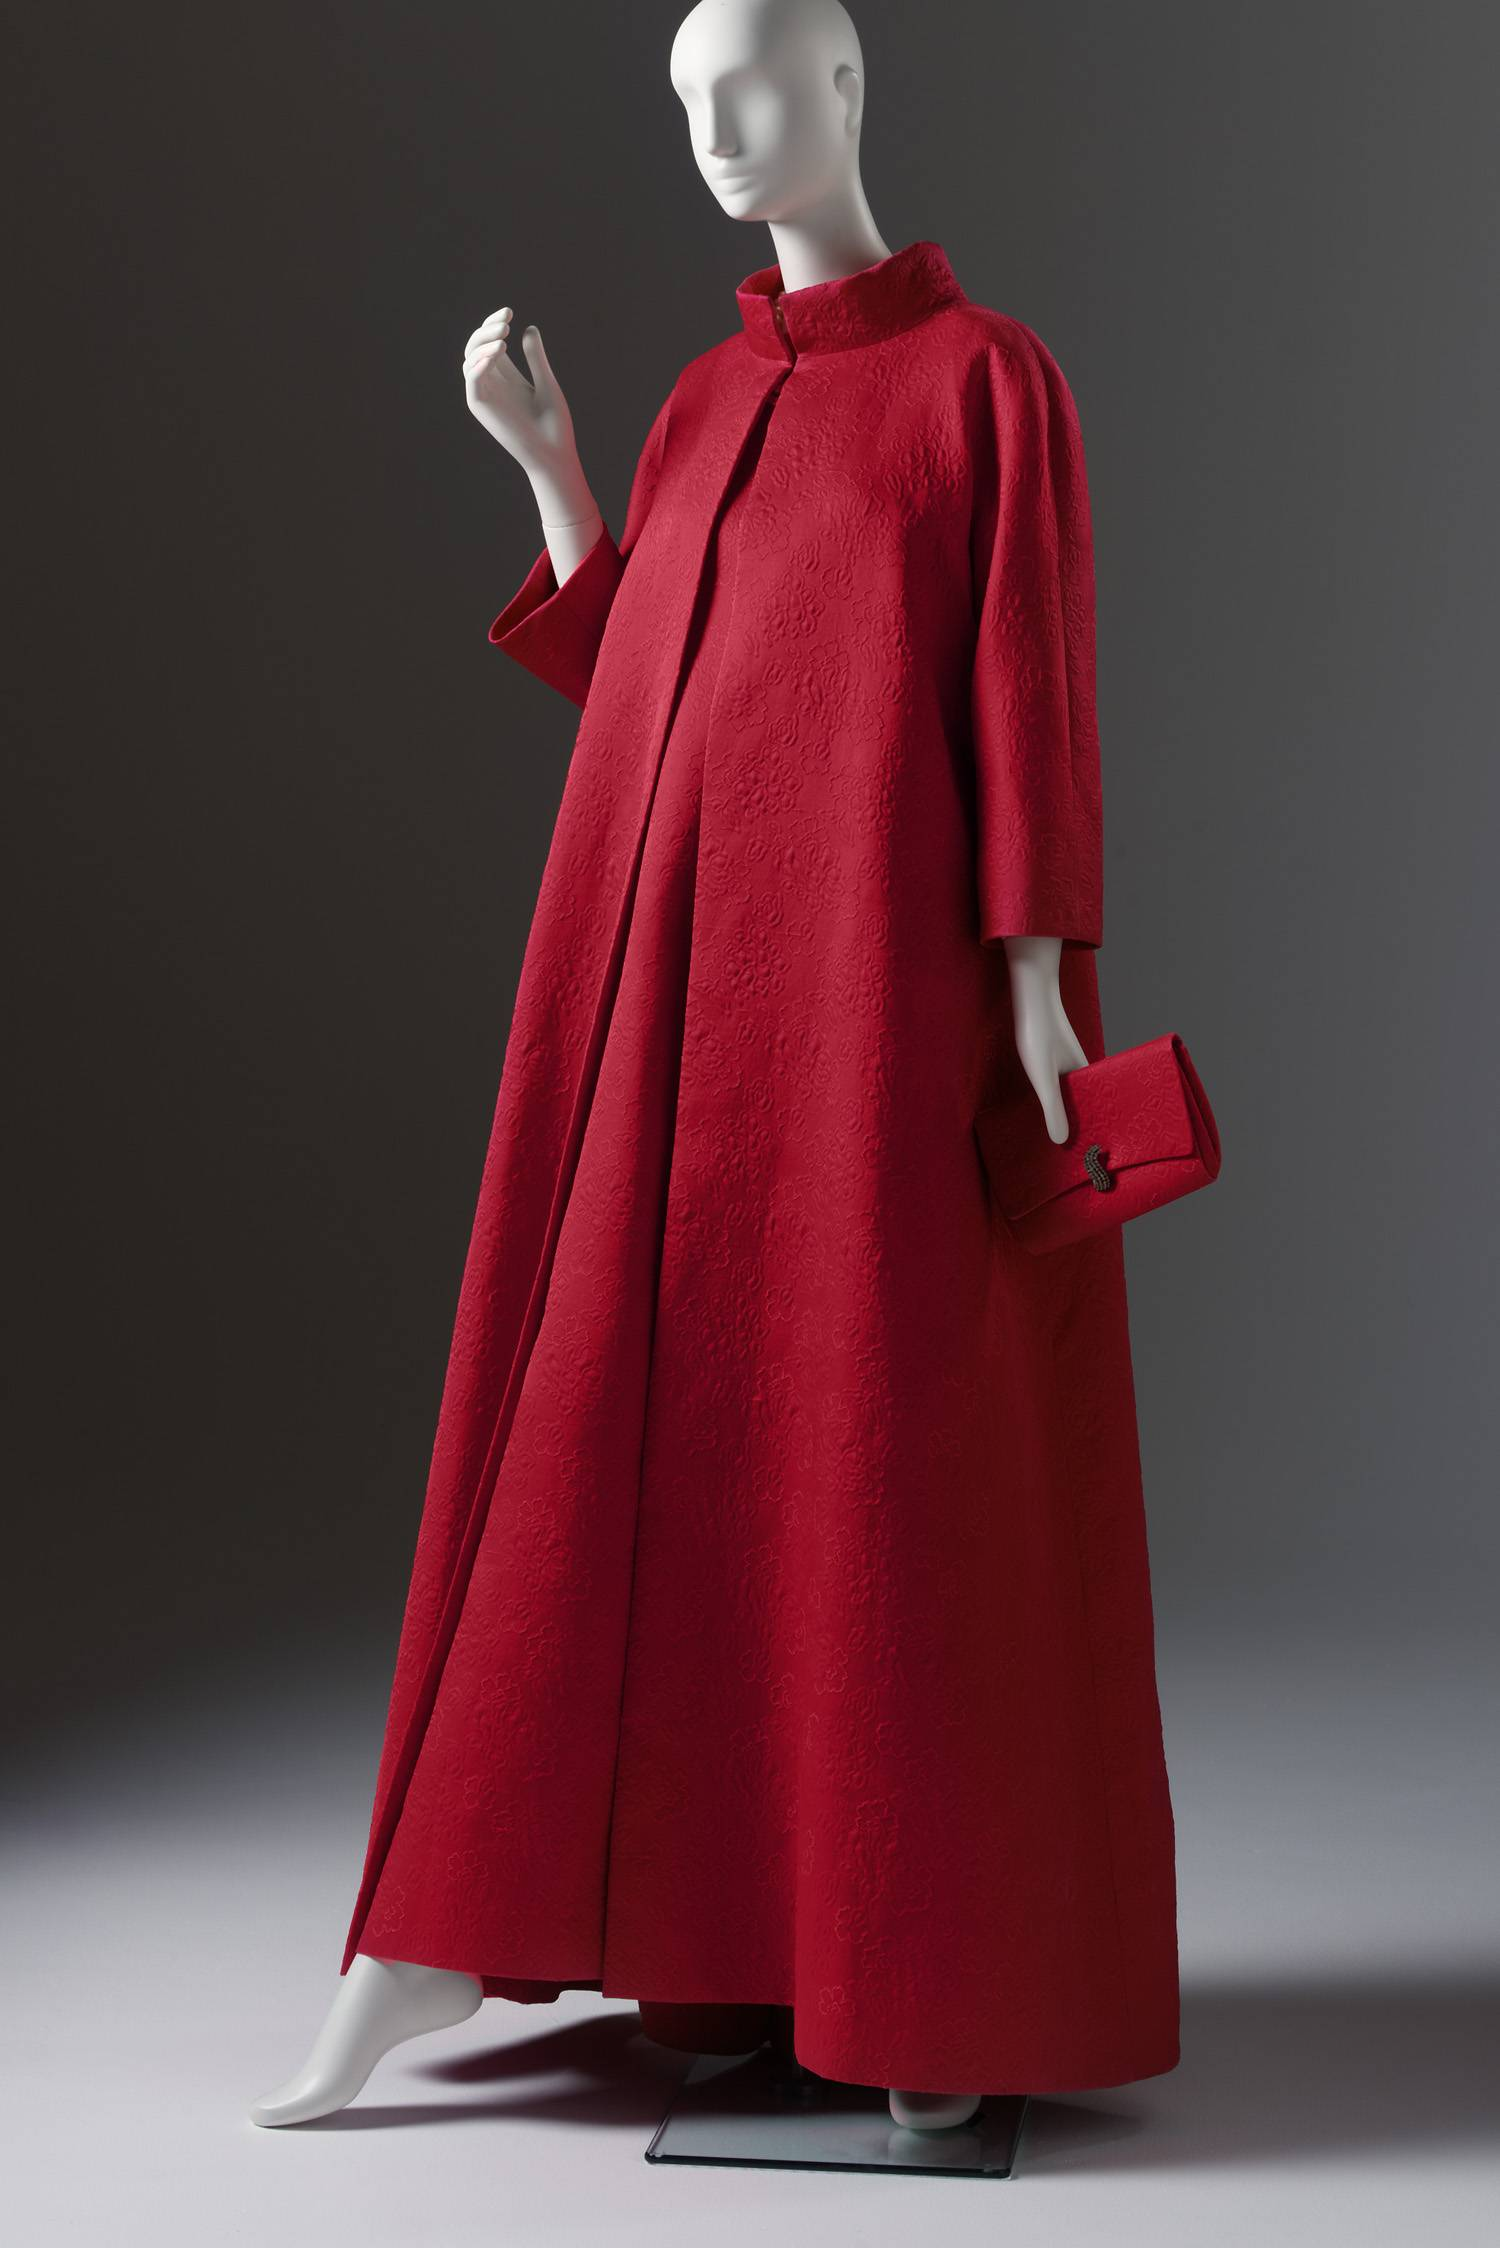 Givenchy Coat Red